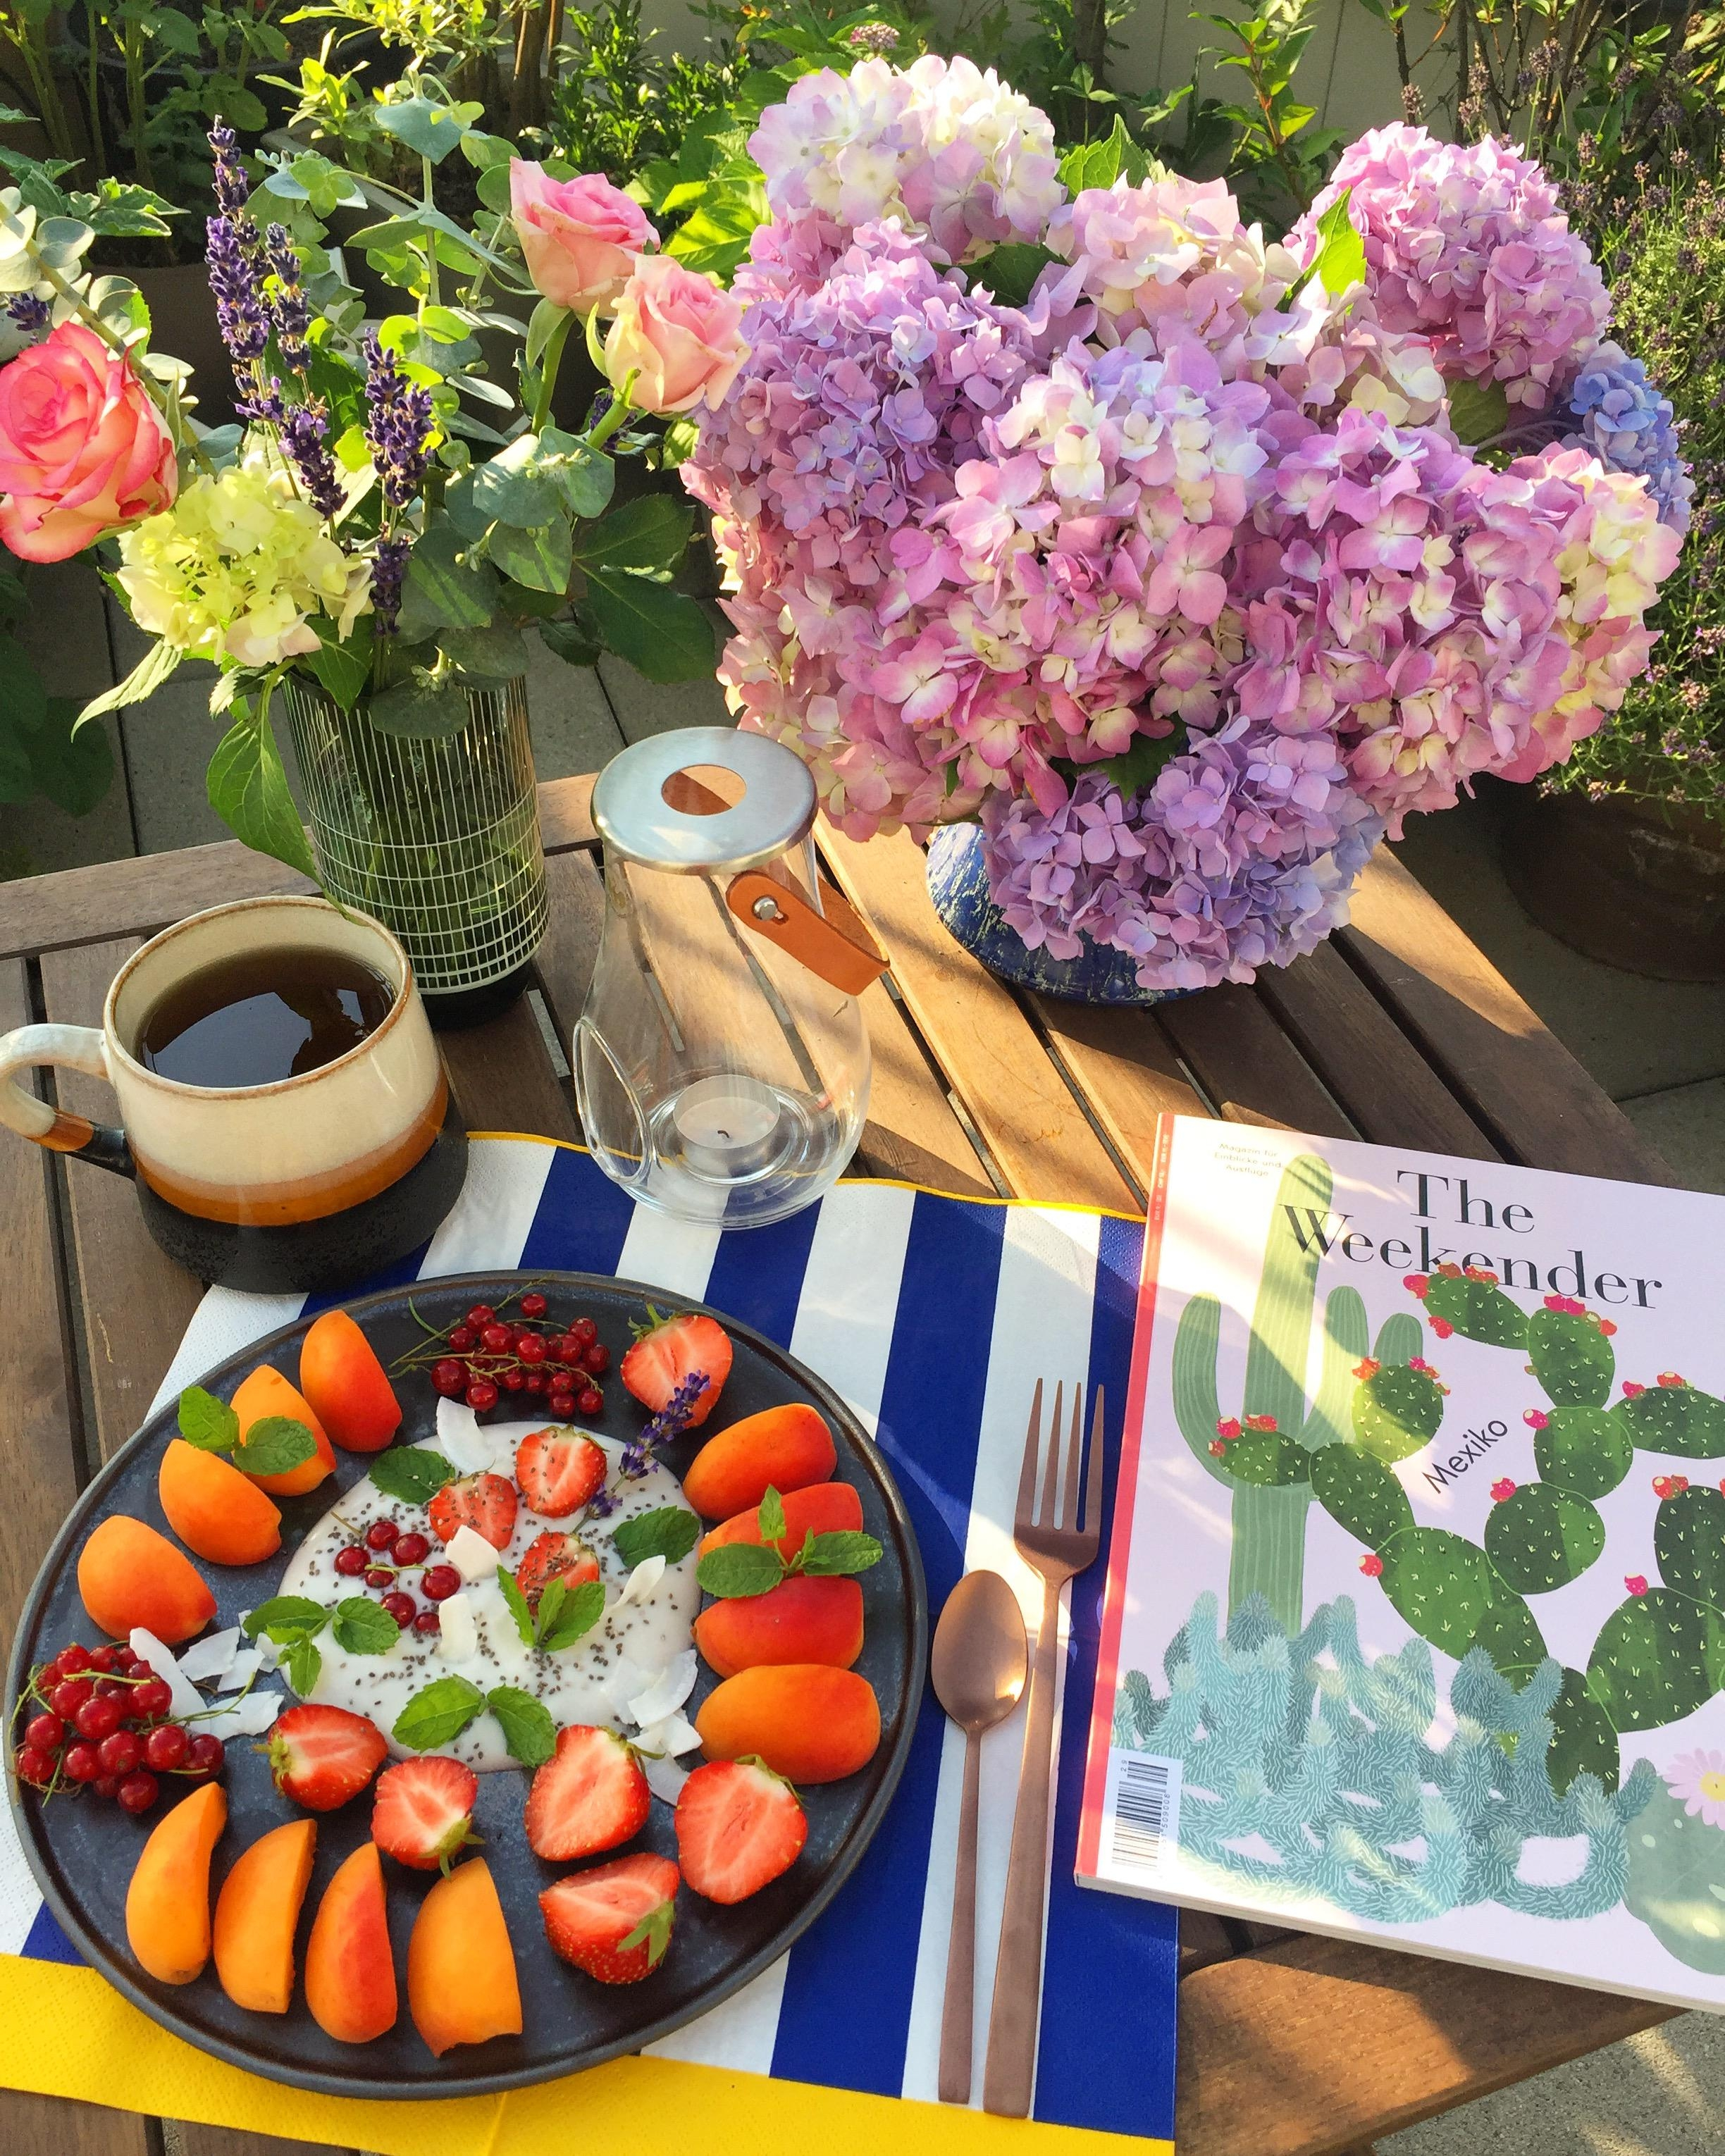 Sunday is my day  breakfastathome myterrace flowerpower healthyfood metime sunshine sonnige gruesse aus wien   f74081b5 44e8 47ce 90a6 67828e3f88a9